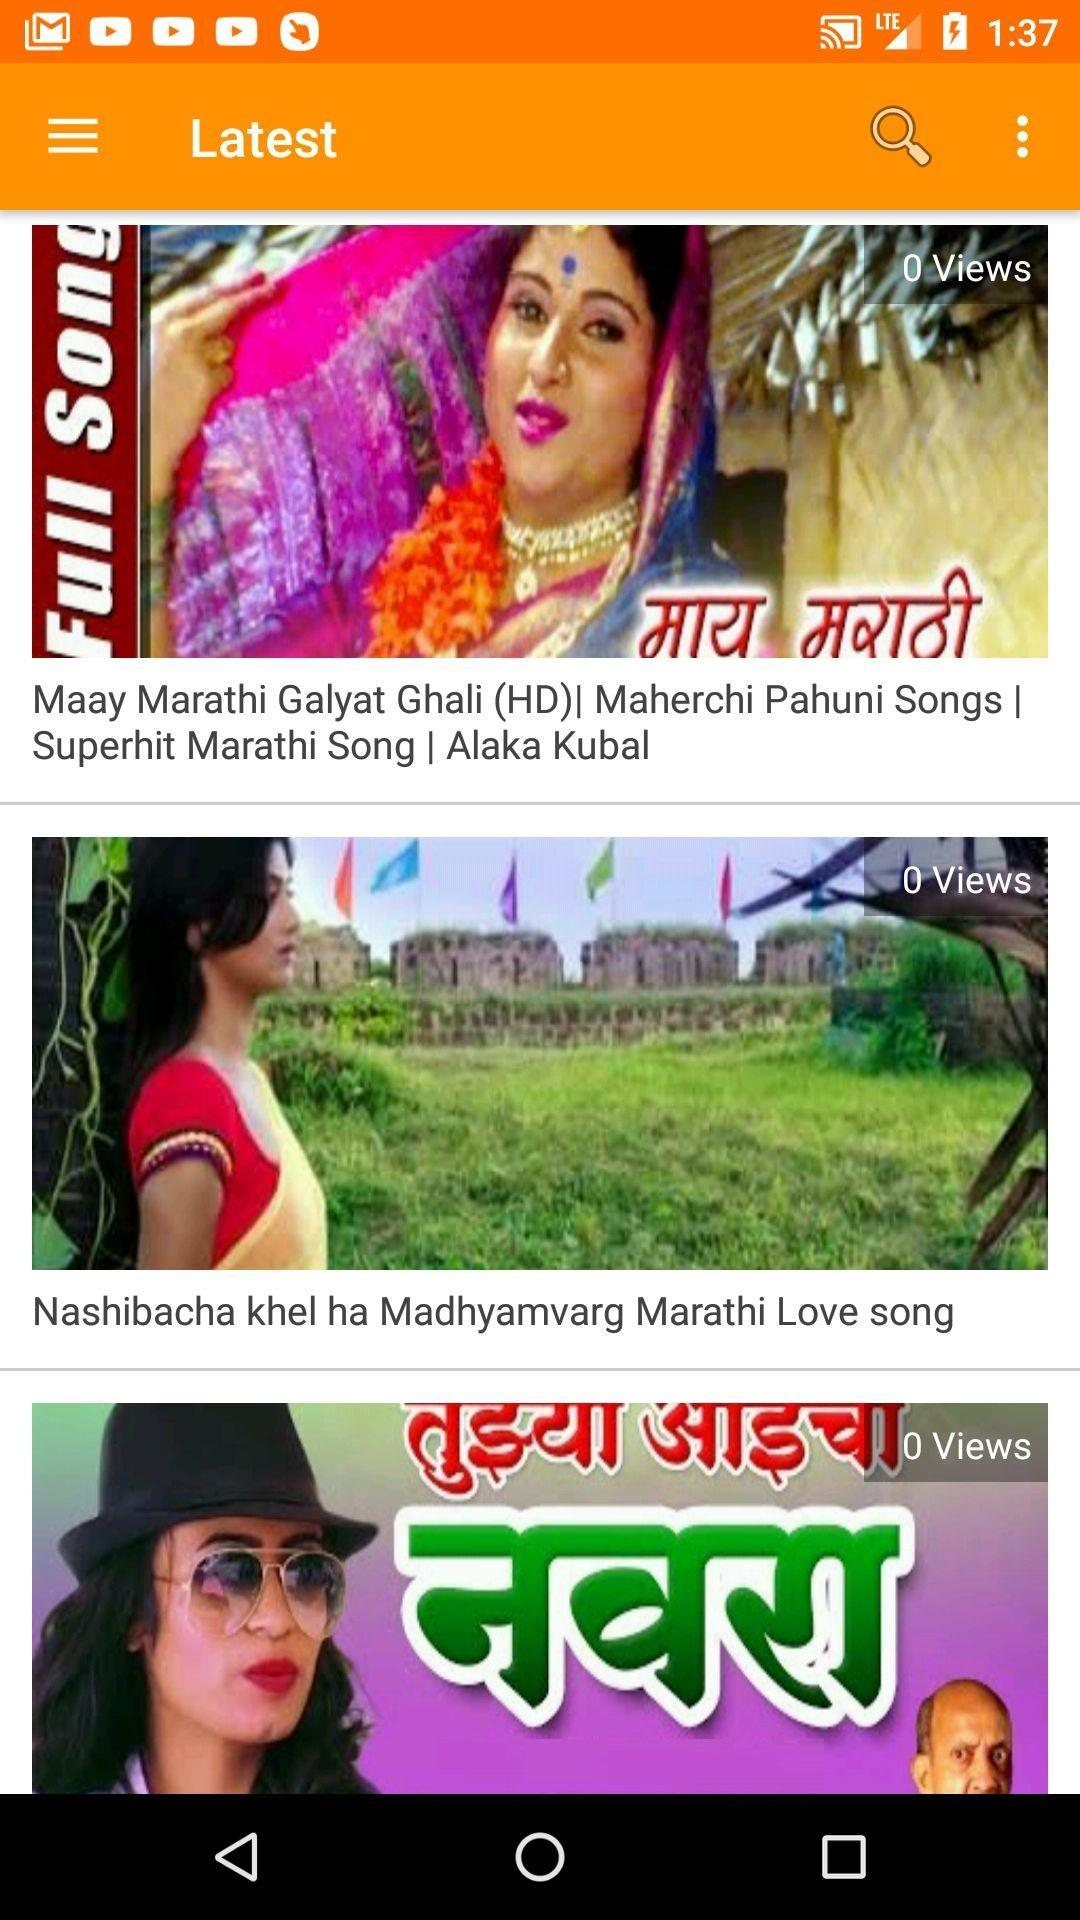 Marathi Videos - Marathi Songs, Comedy with DJ for Android - APK Download